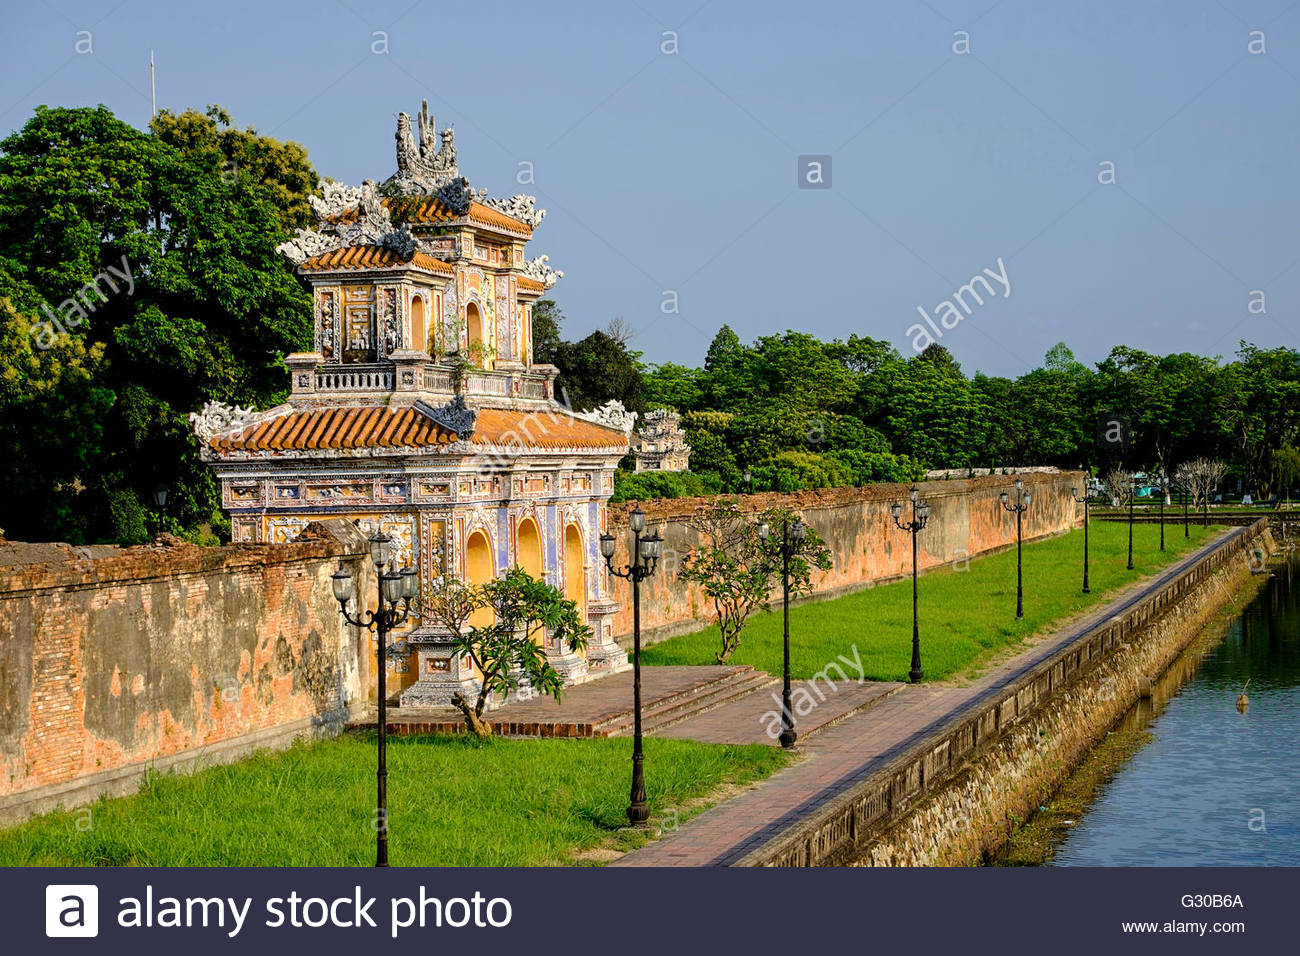 Western moats, the Forbidden City (Purple City) in the heart of the Imperial City, UNESCO, Hue, Thua Thien Hue province, - Stock Image